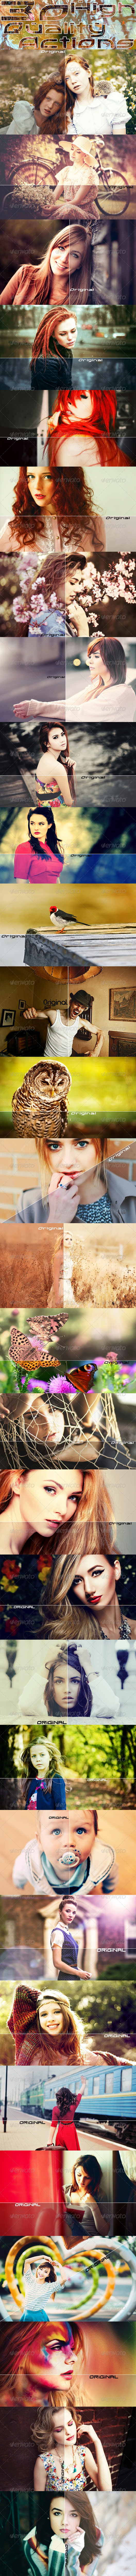 GraphicRiver 30 High Quality Actions 8736645